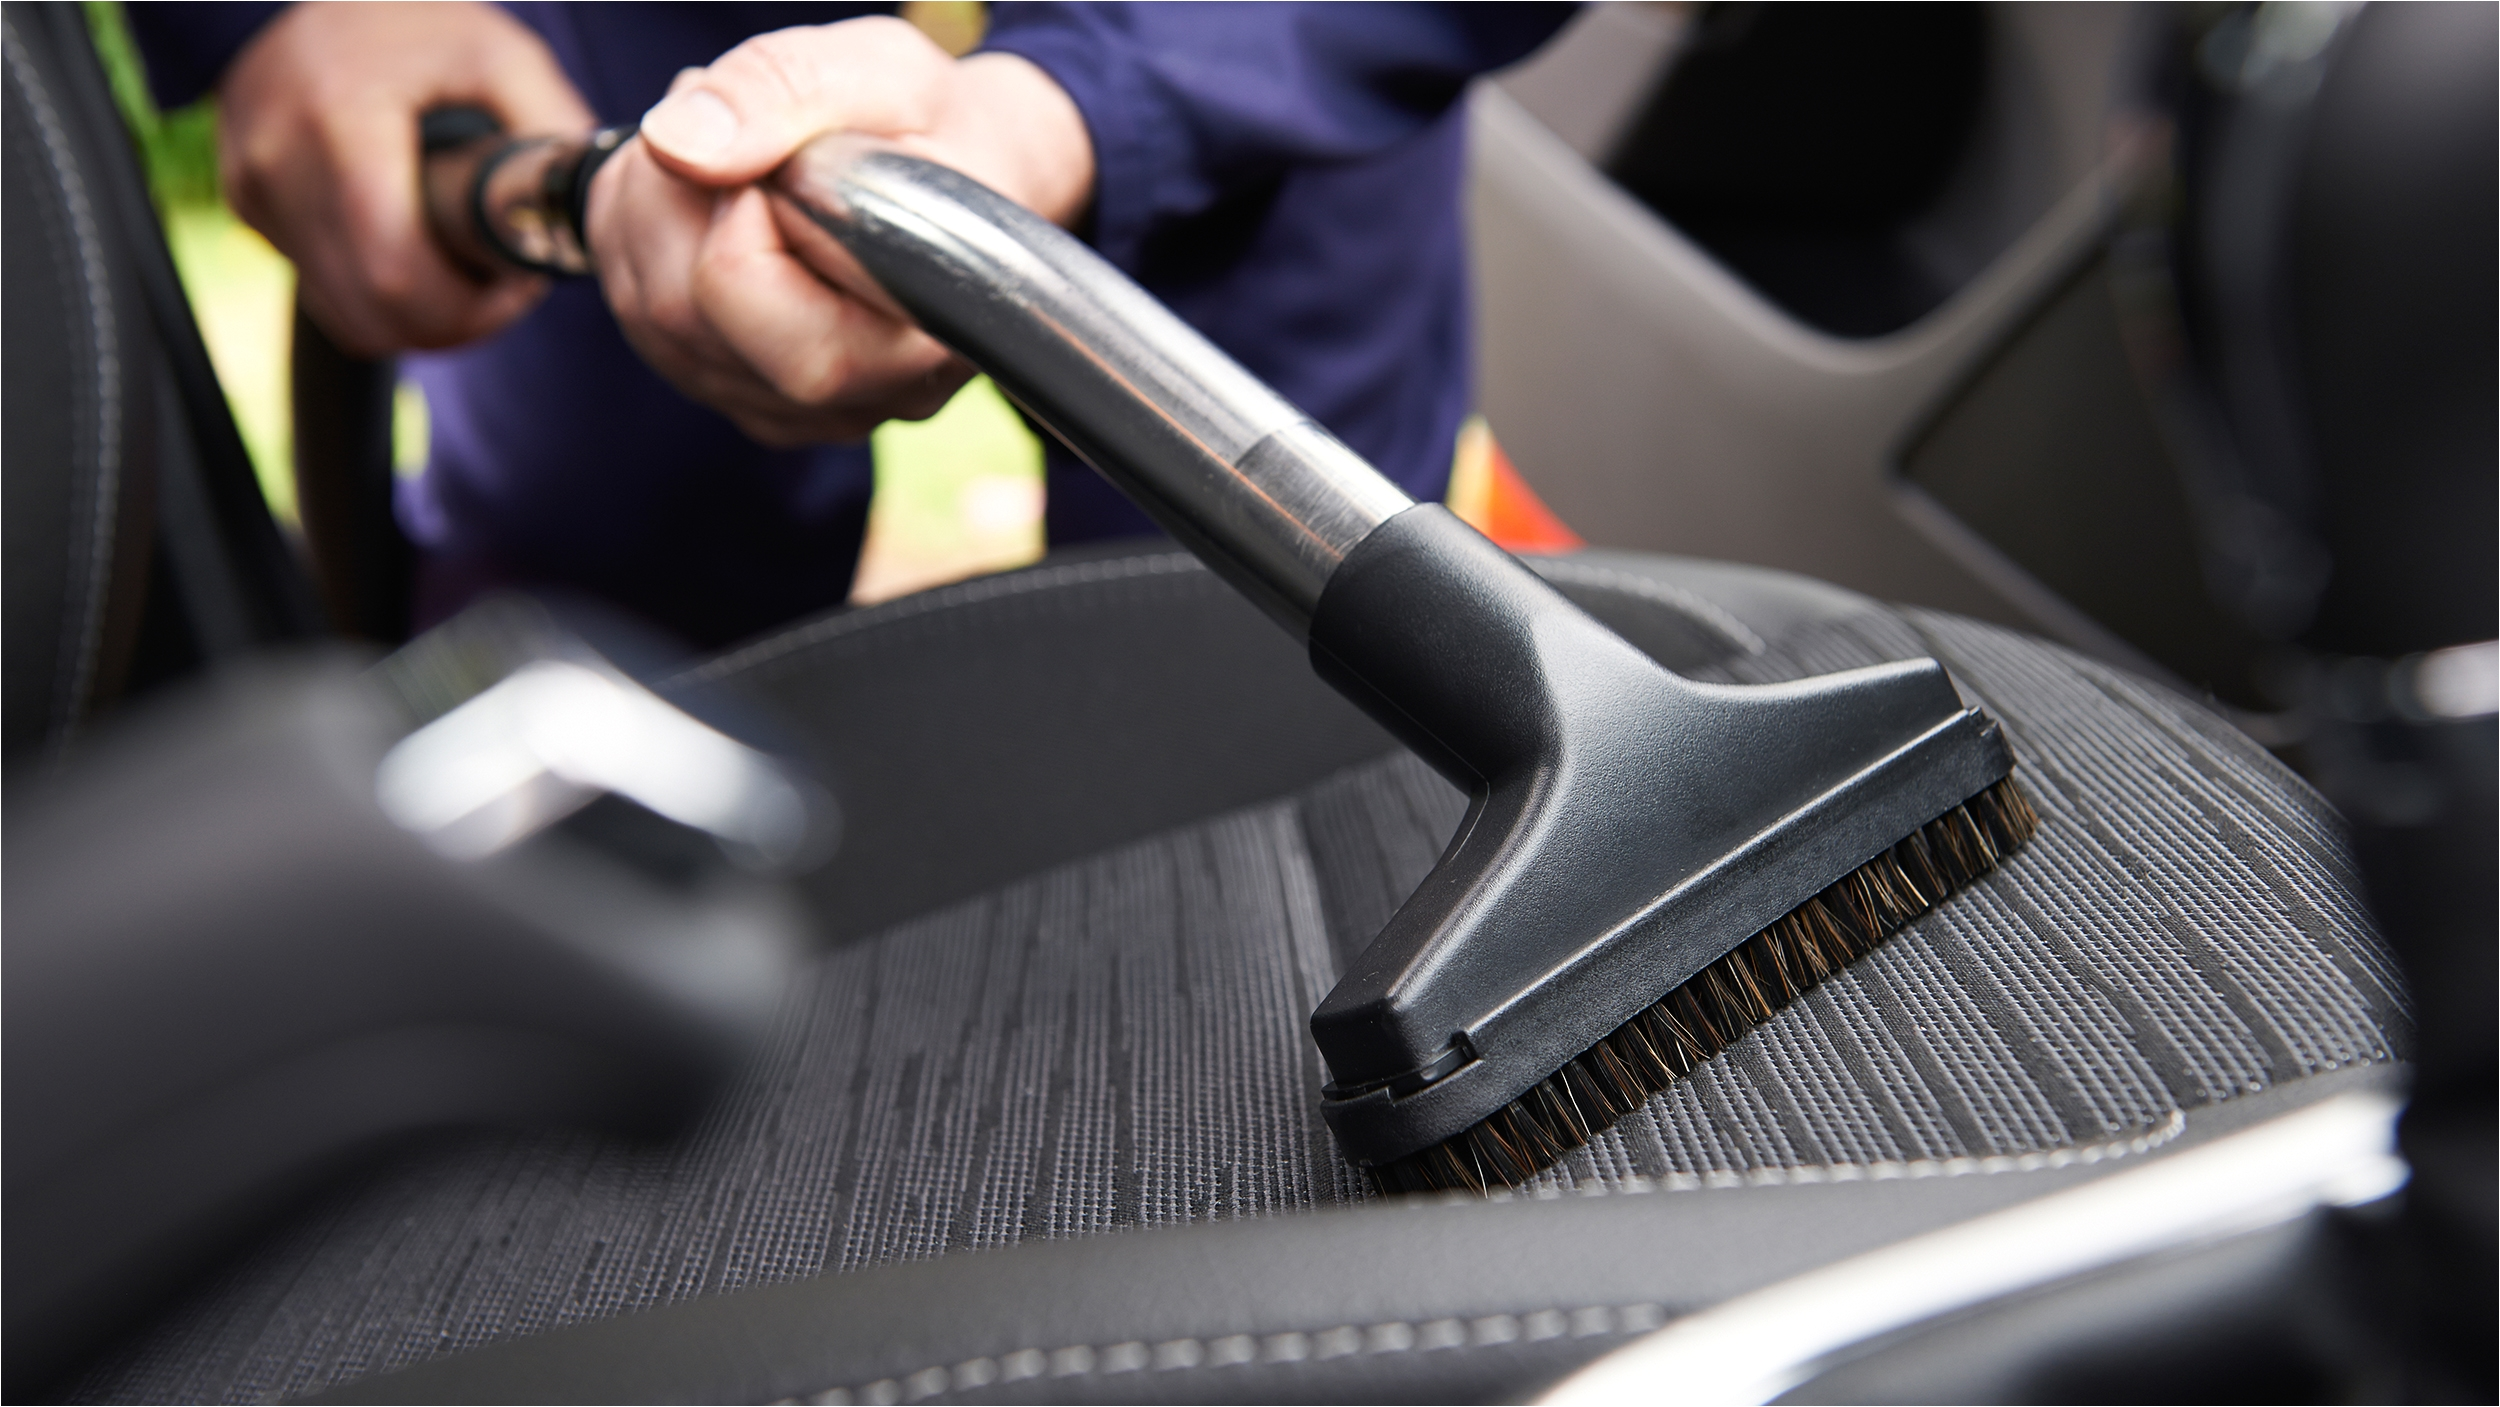 clean car vacuum today 170814 tease f7eaee7d164196b0f45af06da1846944 jpg